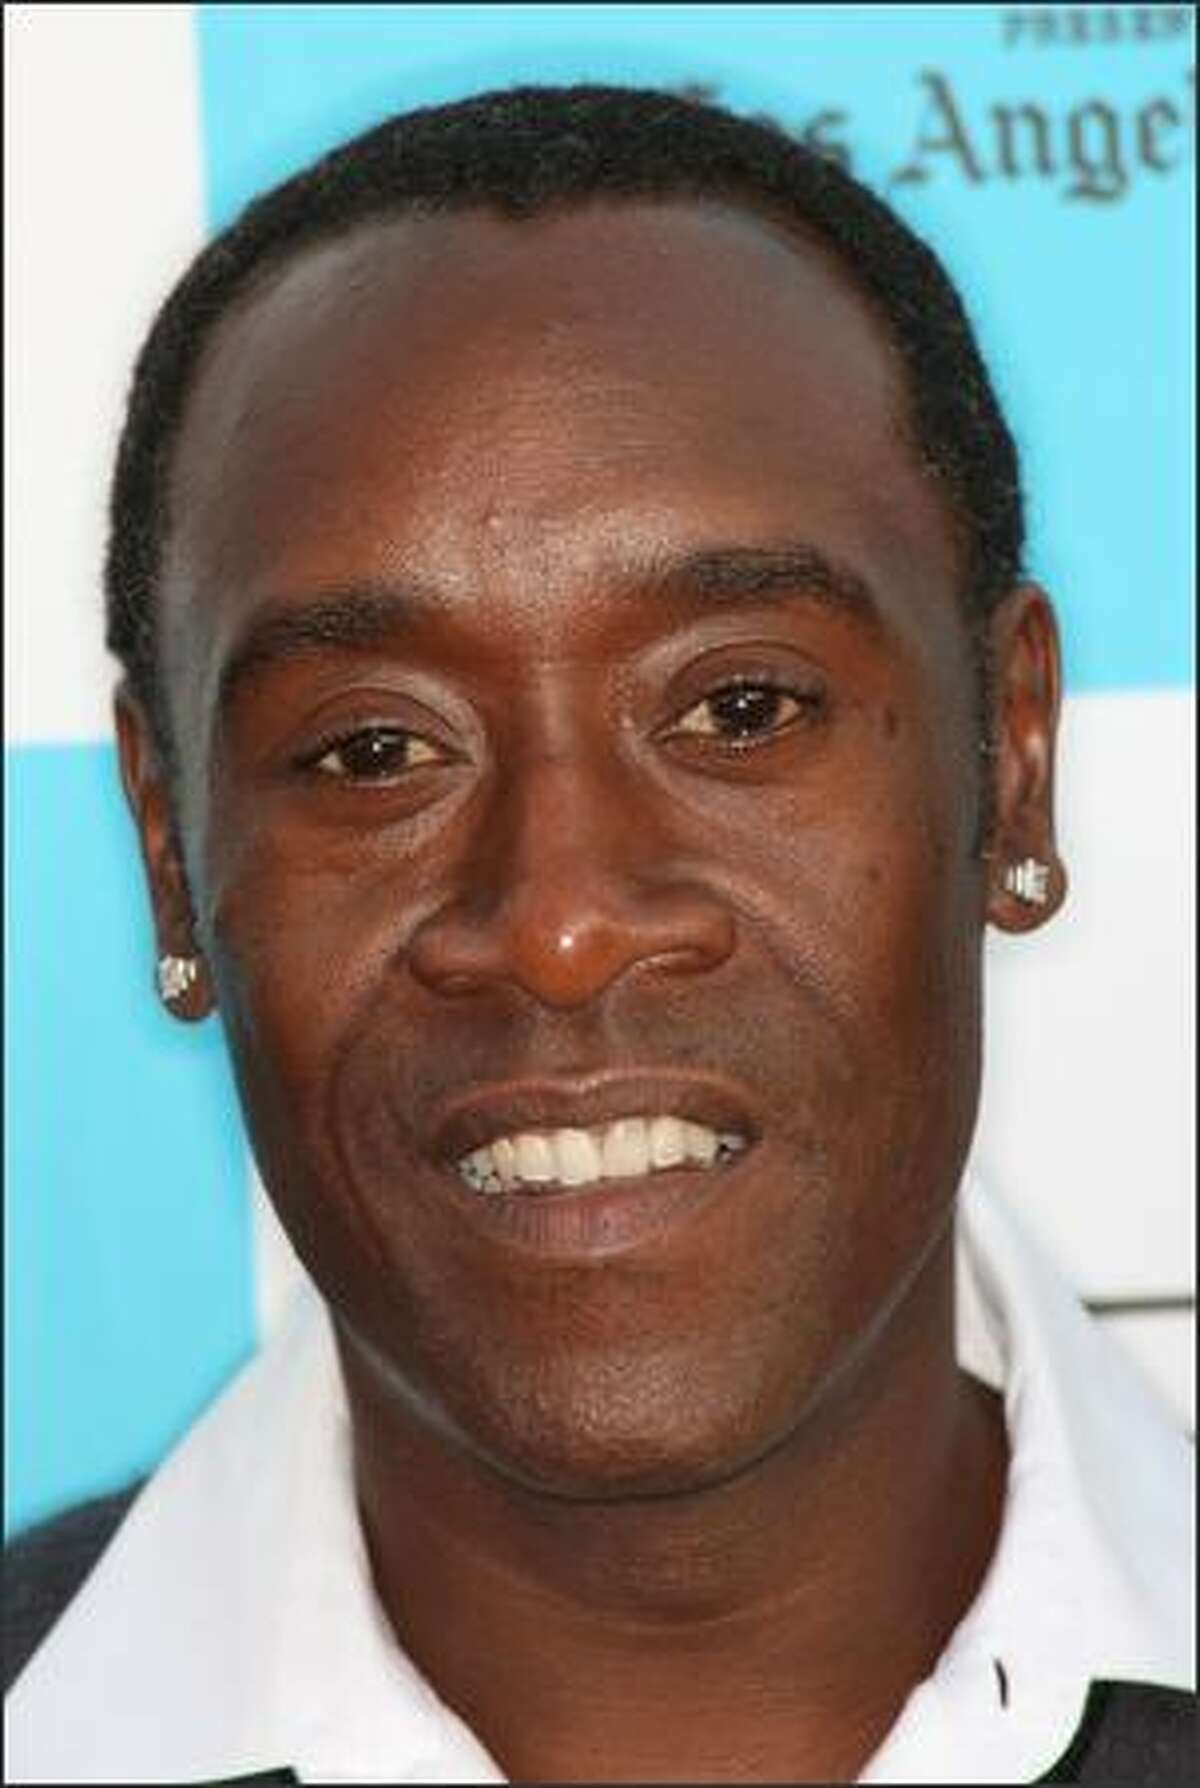 Actor Don Cheadle attends the 2008 Los Angeles Film Festival Awards Ceremony